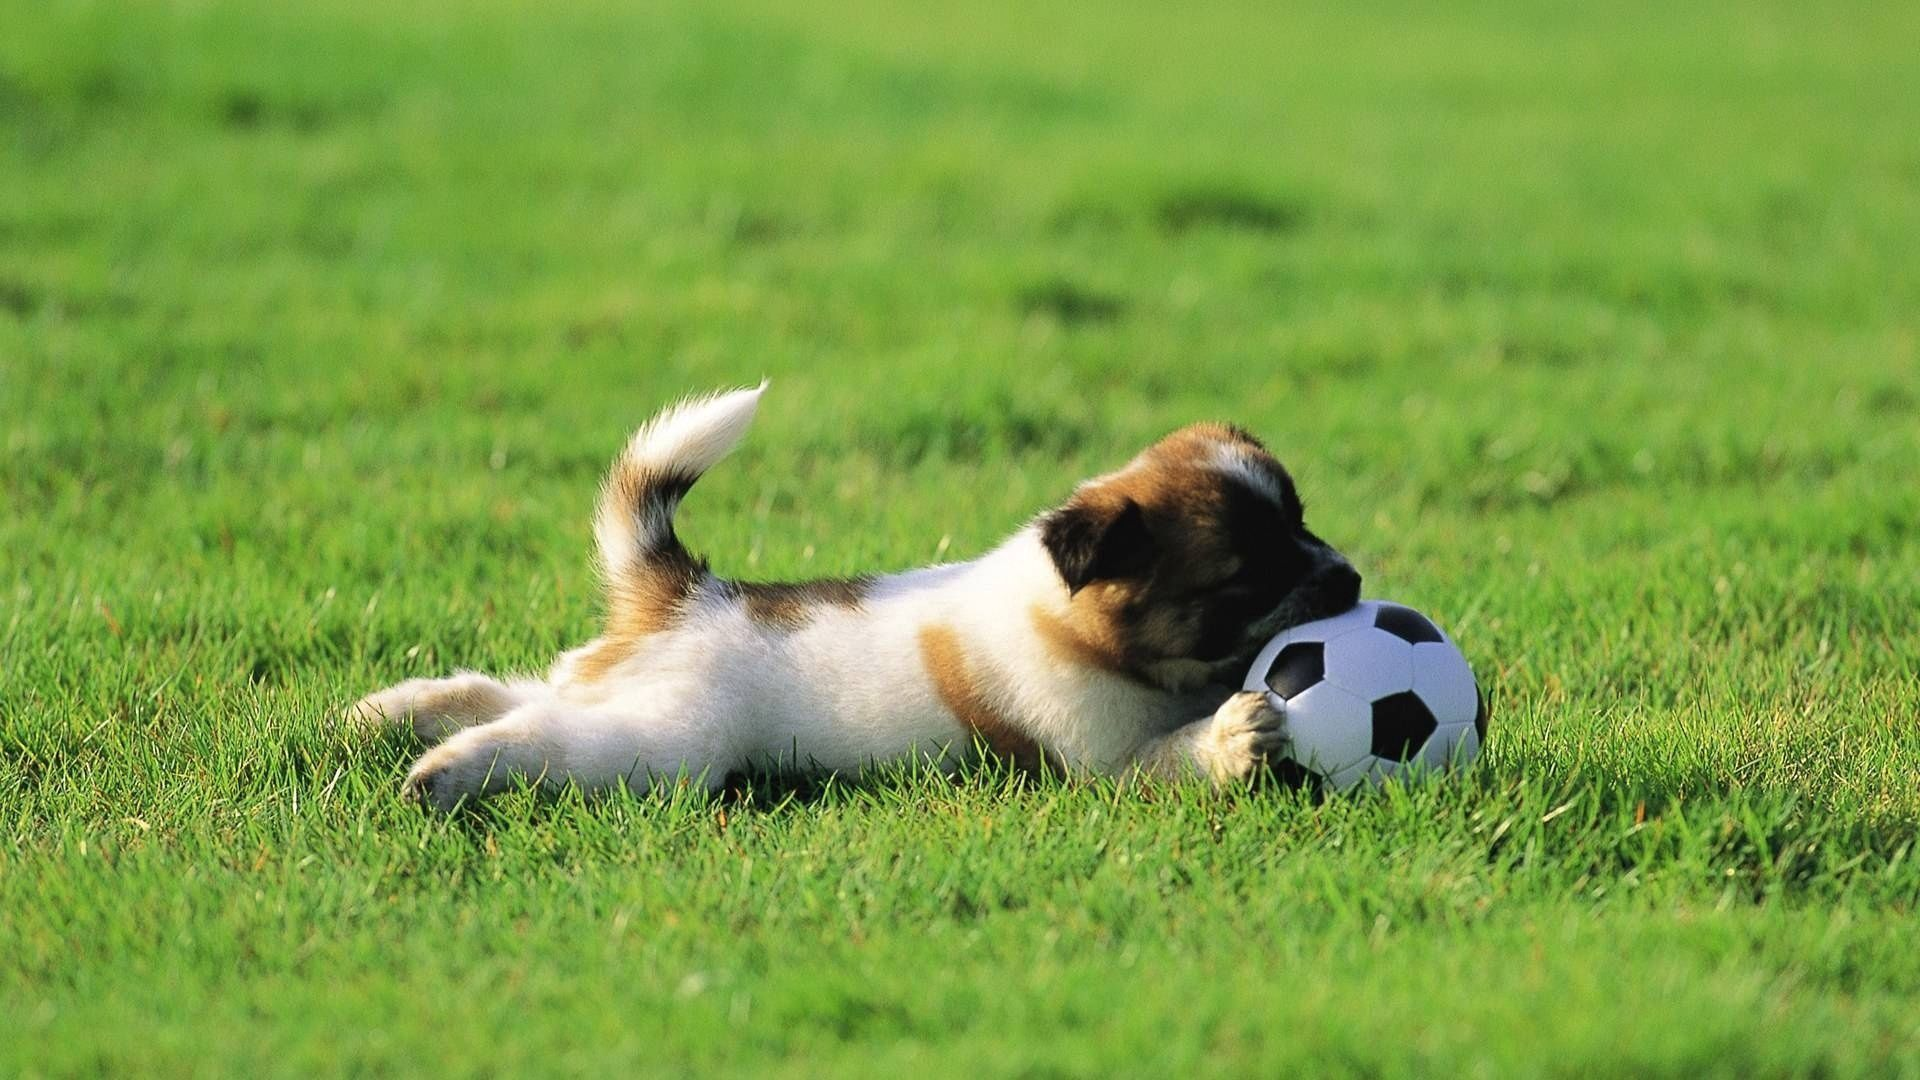 132303 download wallpaper Animals, Dog, Puppy, Grass, Ball, Toy, Playful screensavers and pictures for free